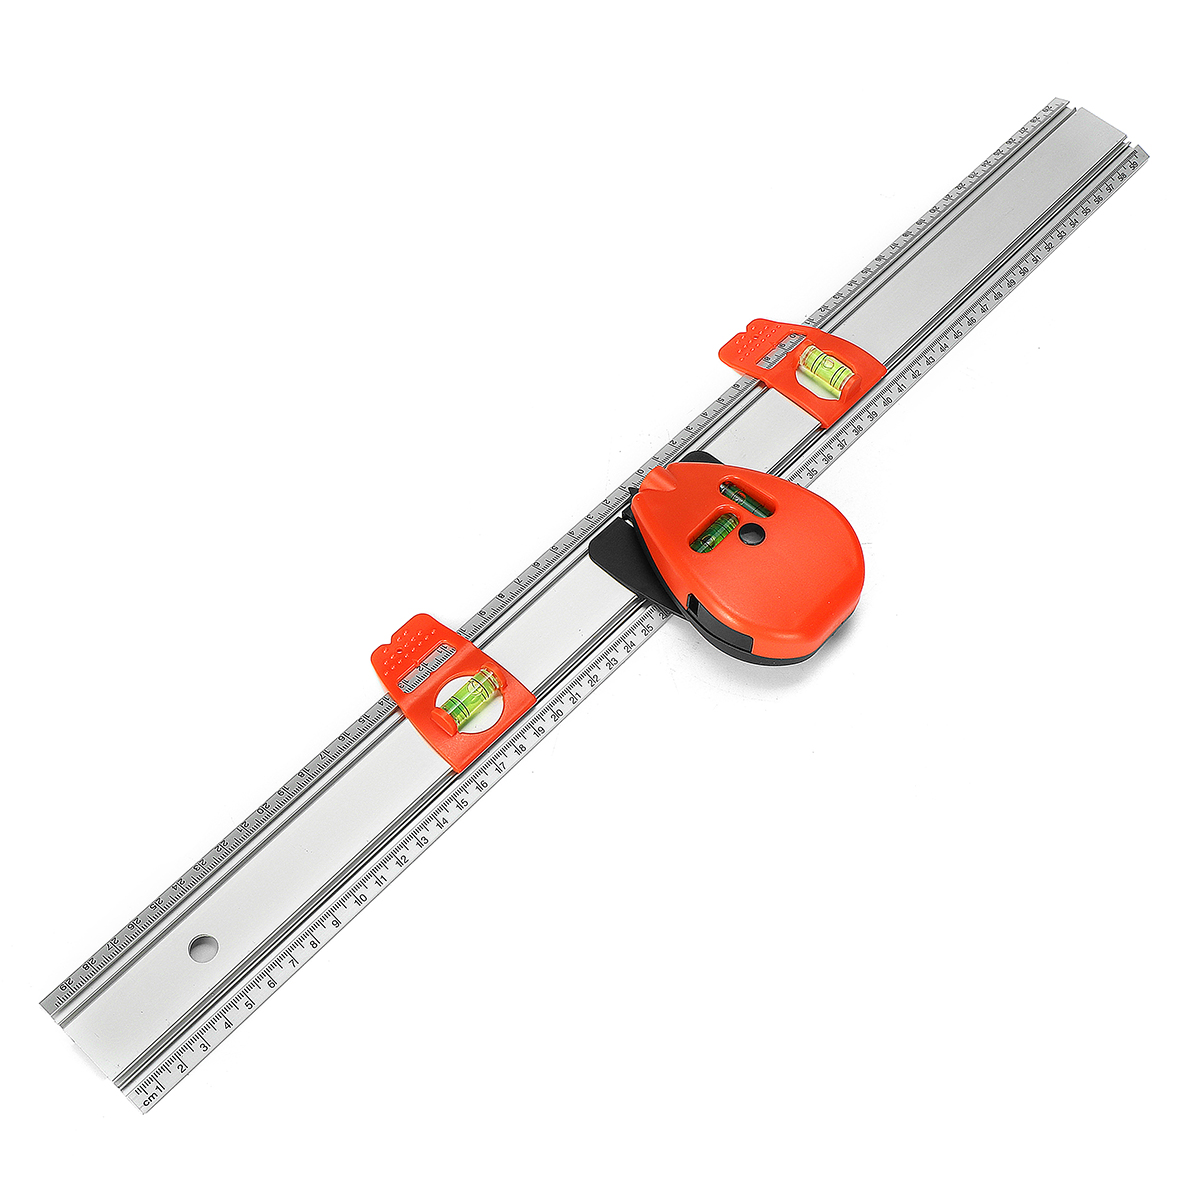 300mm Aluminum Alloy Laser Level Magnet Ruler Measuring